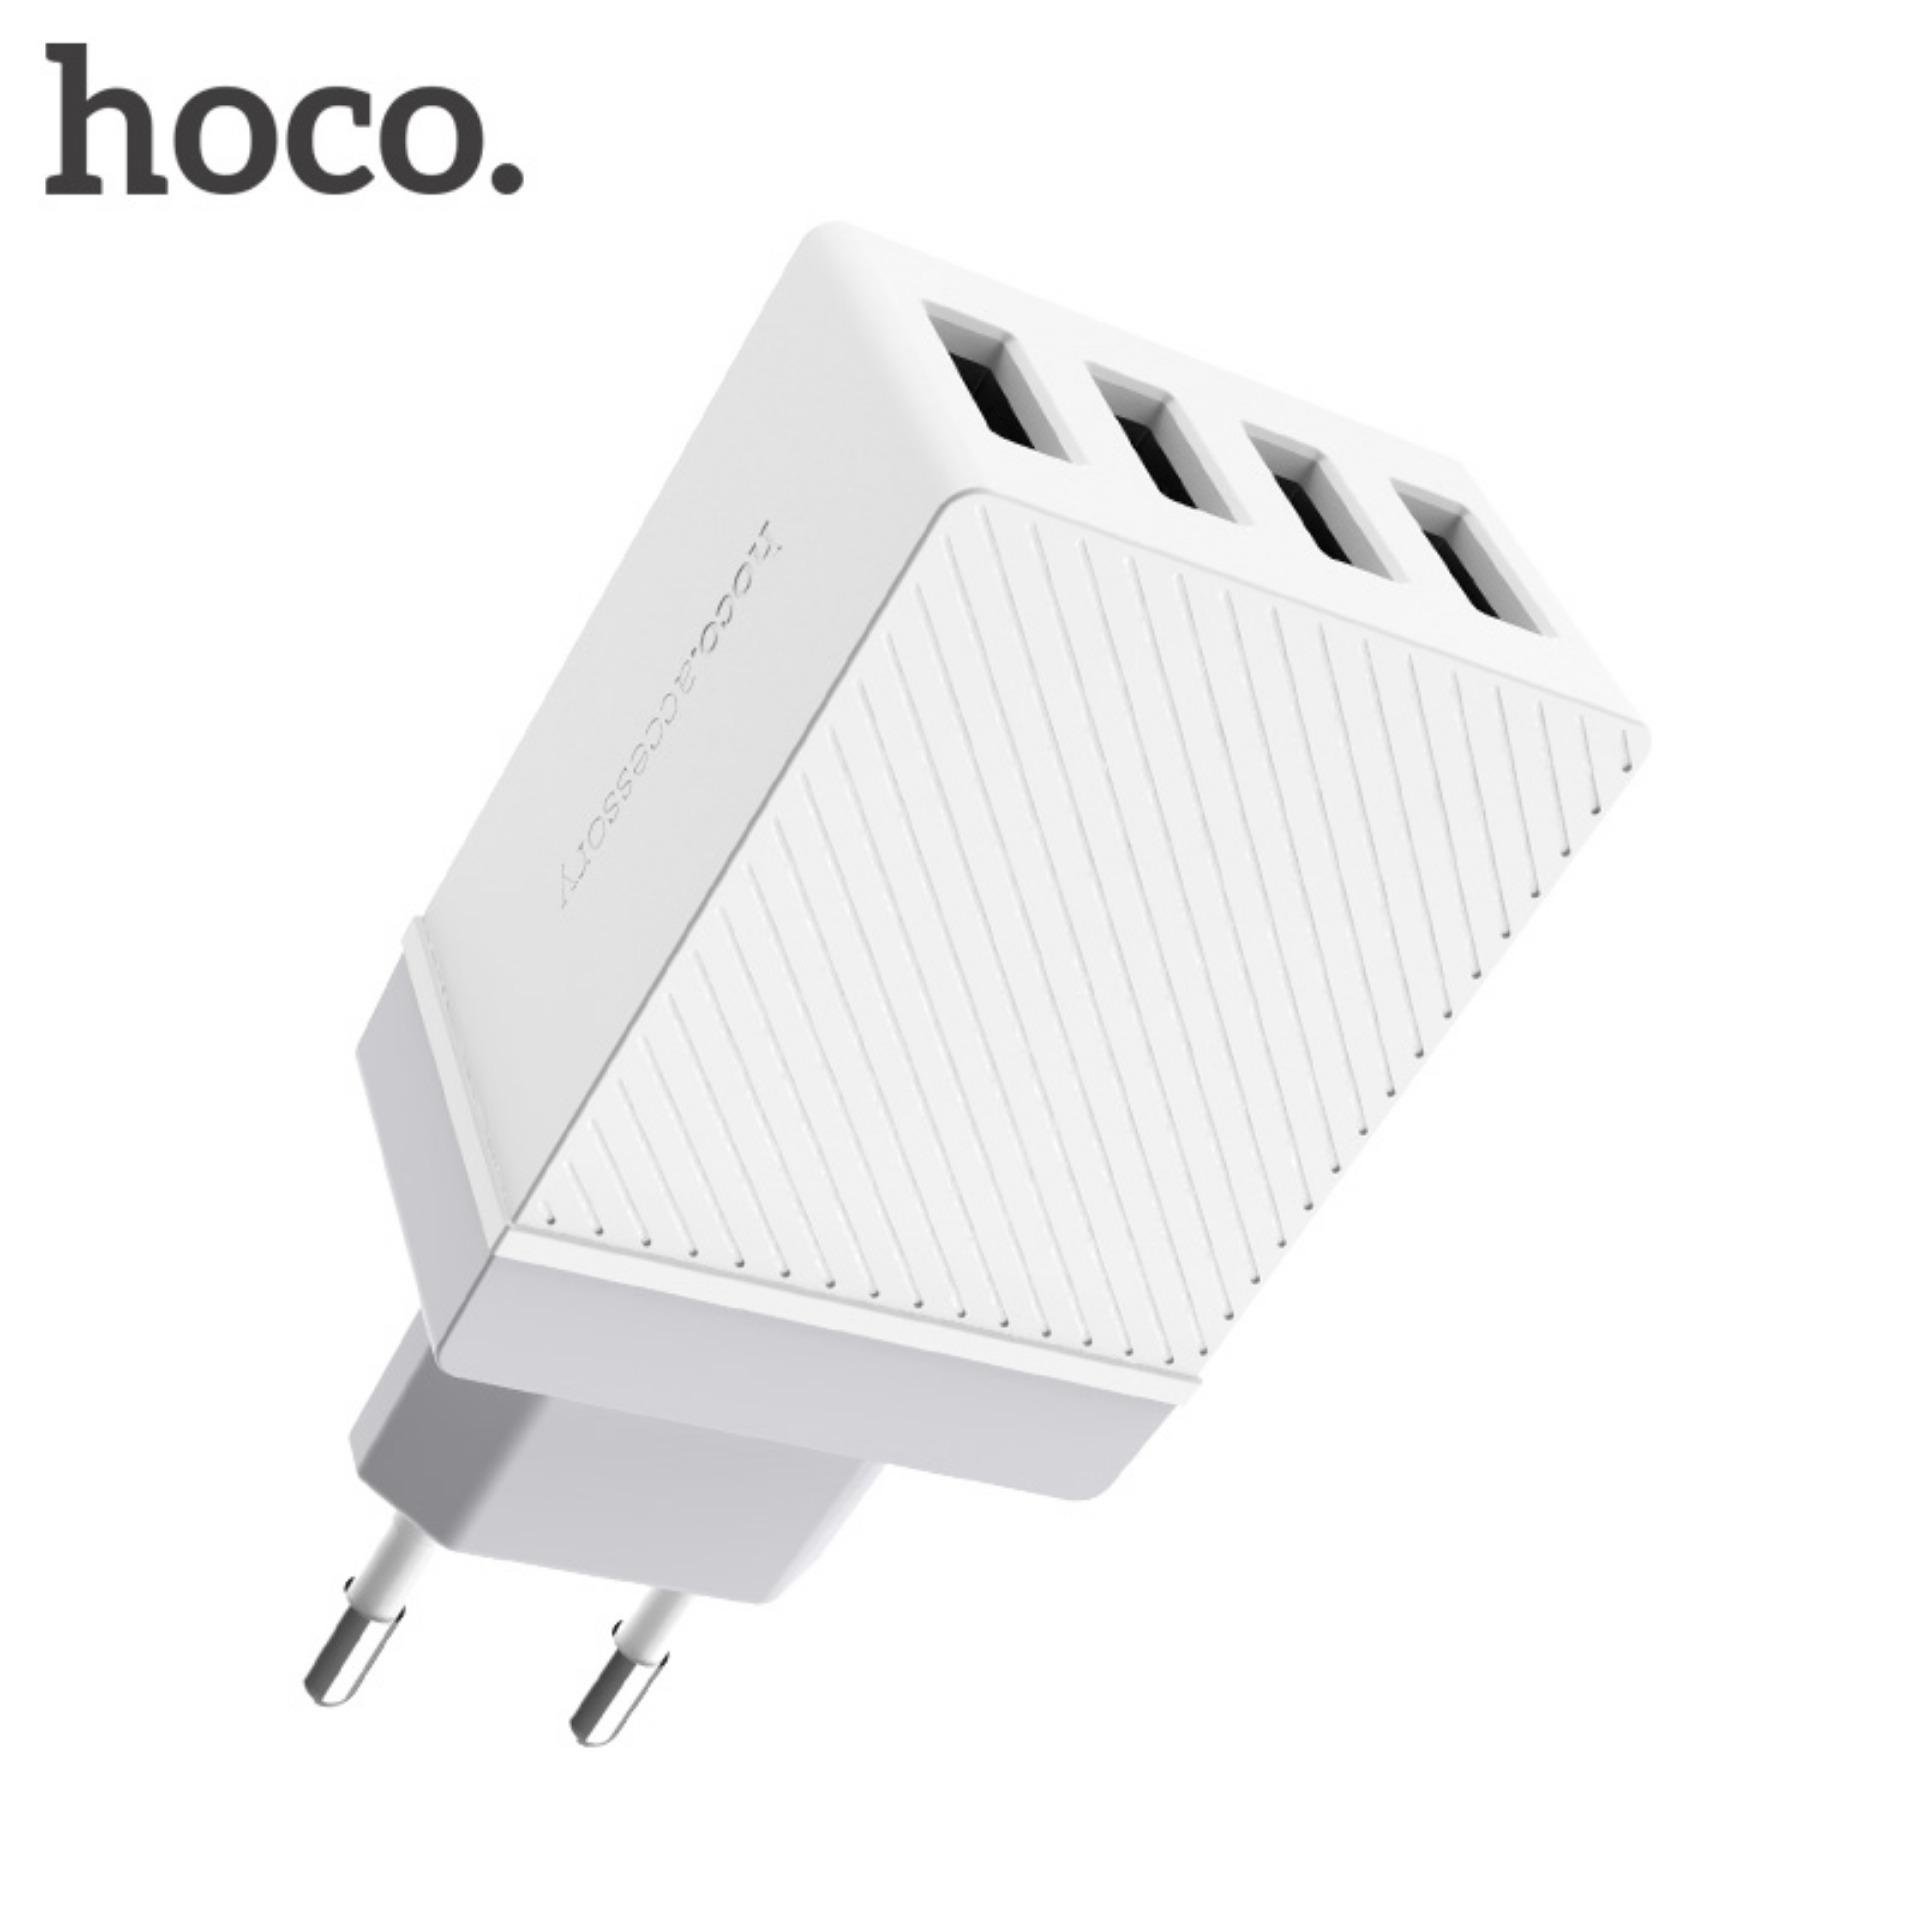 HOCO 5V 3.4A Universal 4 Port USB Charger EU UK US Plug Adaptor Cerdas untuk iPad Apple iPhone Sams